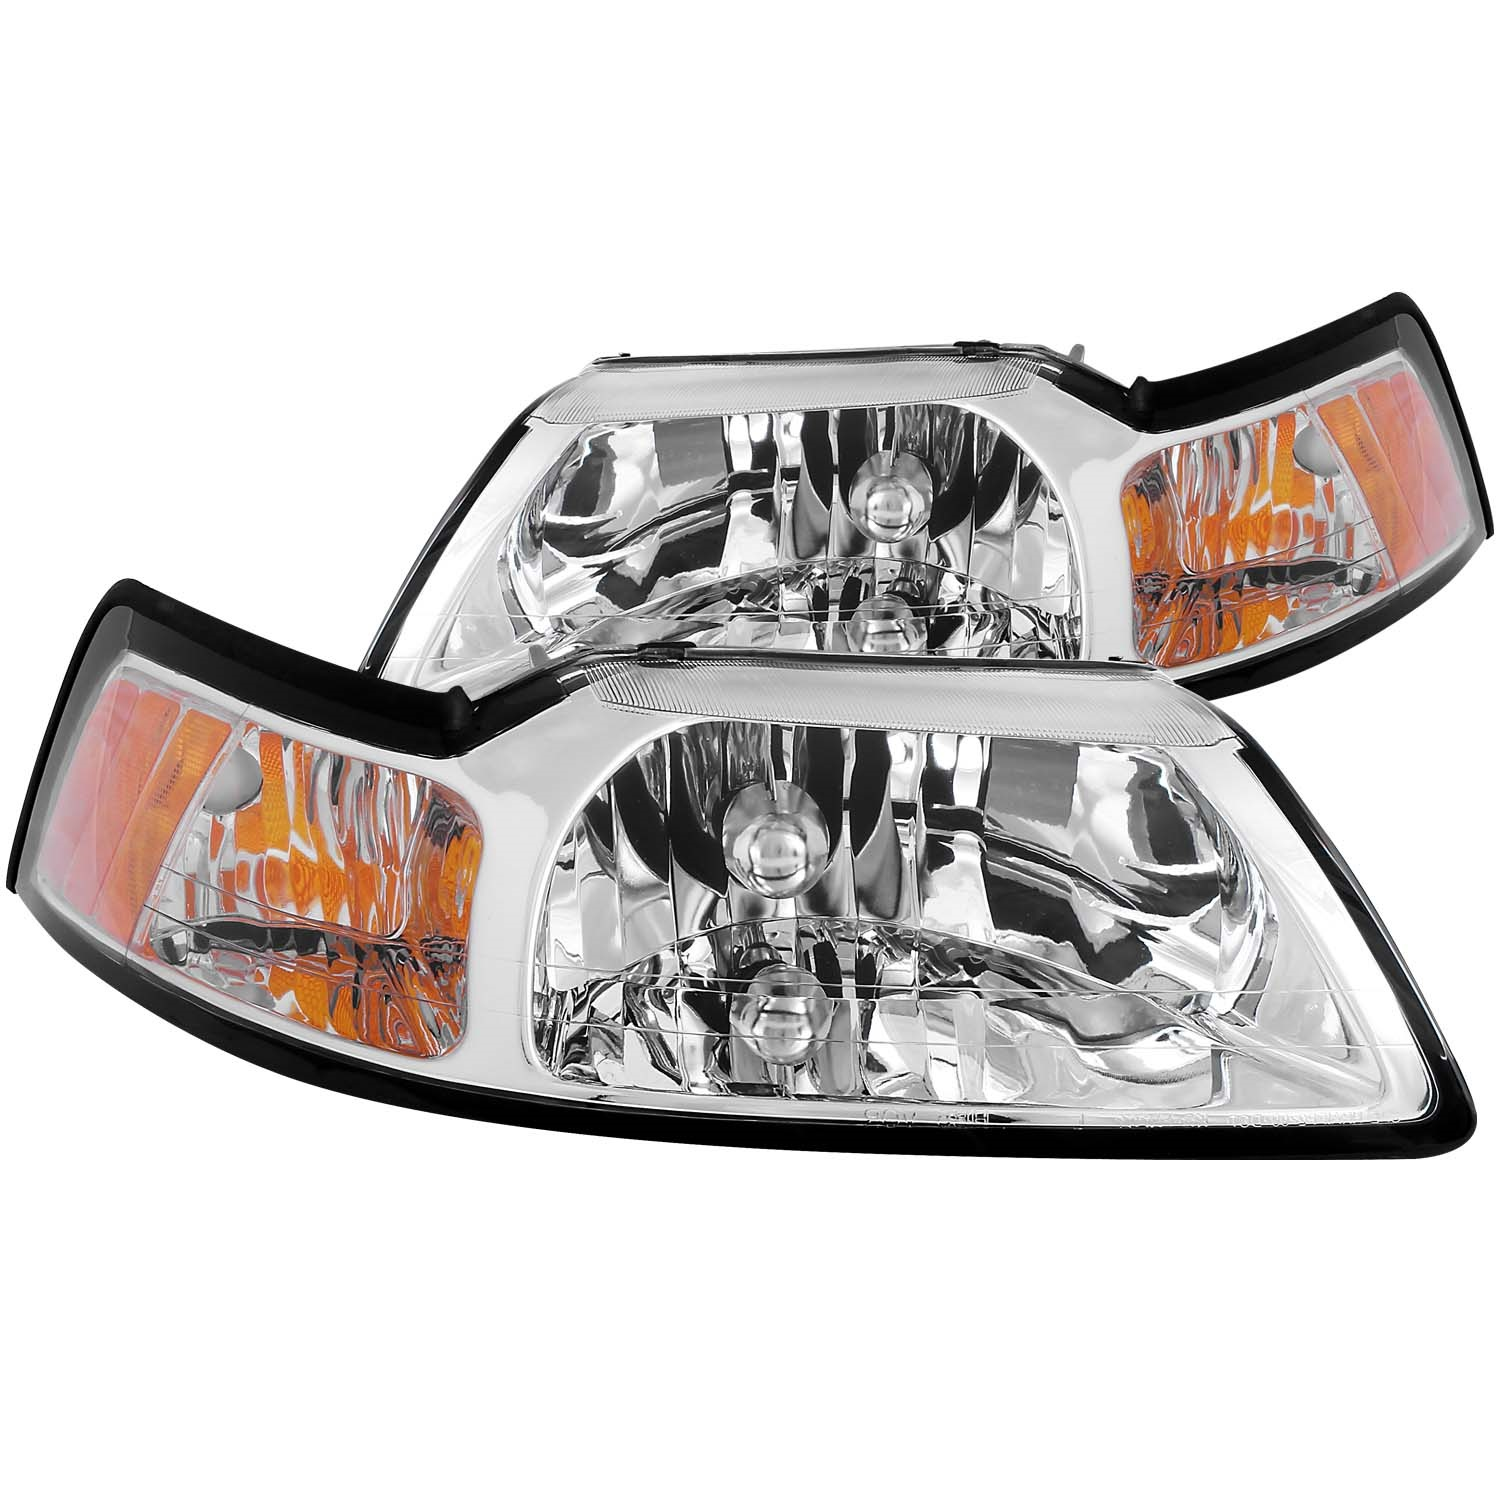 Anzo USA 121041 Crystal Headlight Set Fits 99-04 Mustang